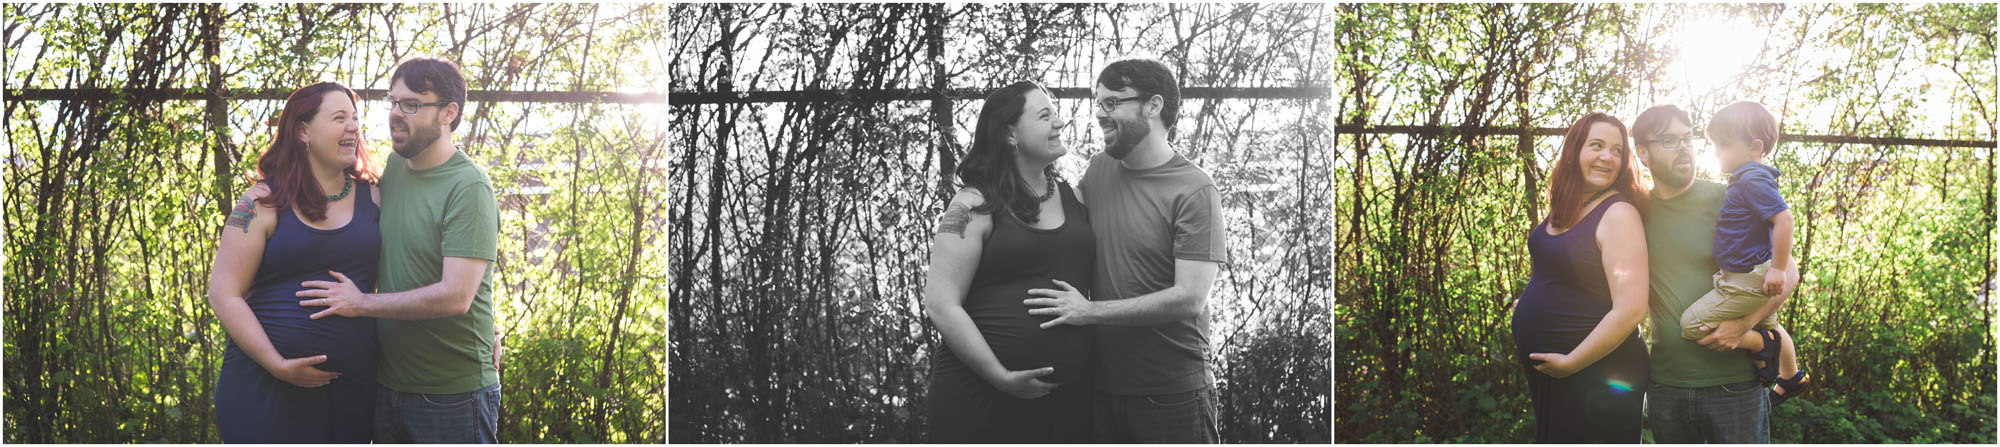 ashley vos photography seattle family maternity photographer_0012.jpg